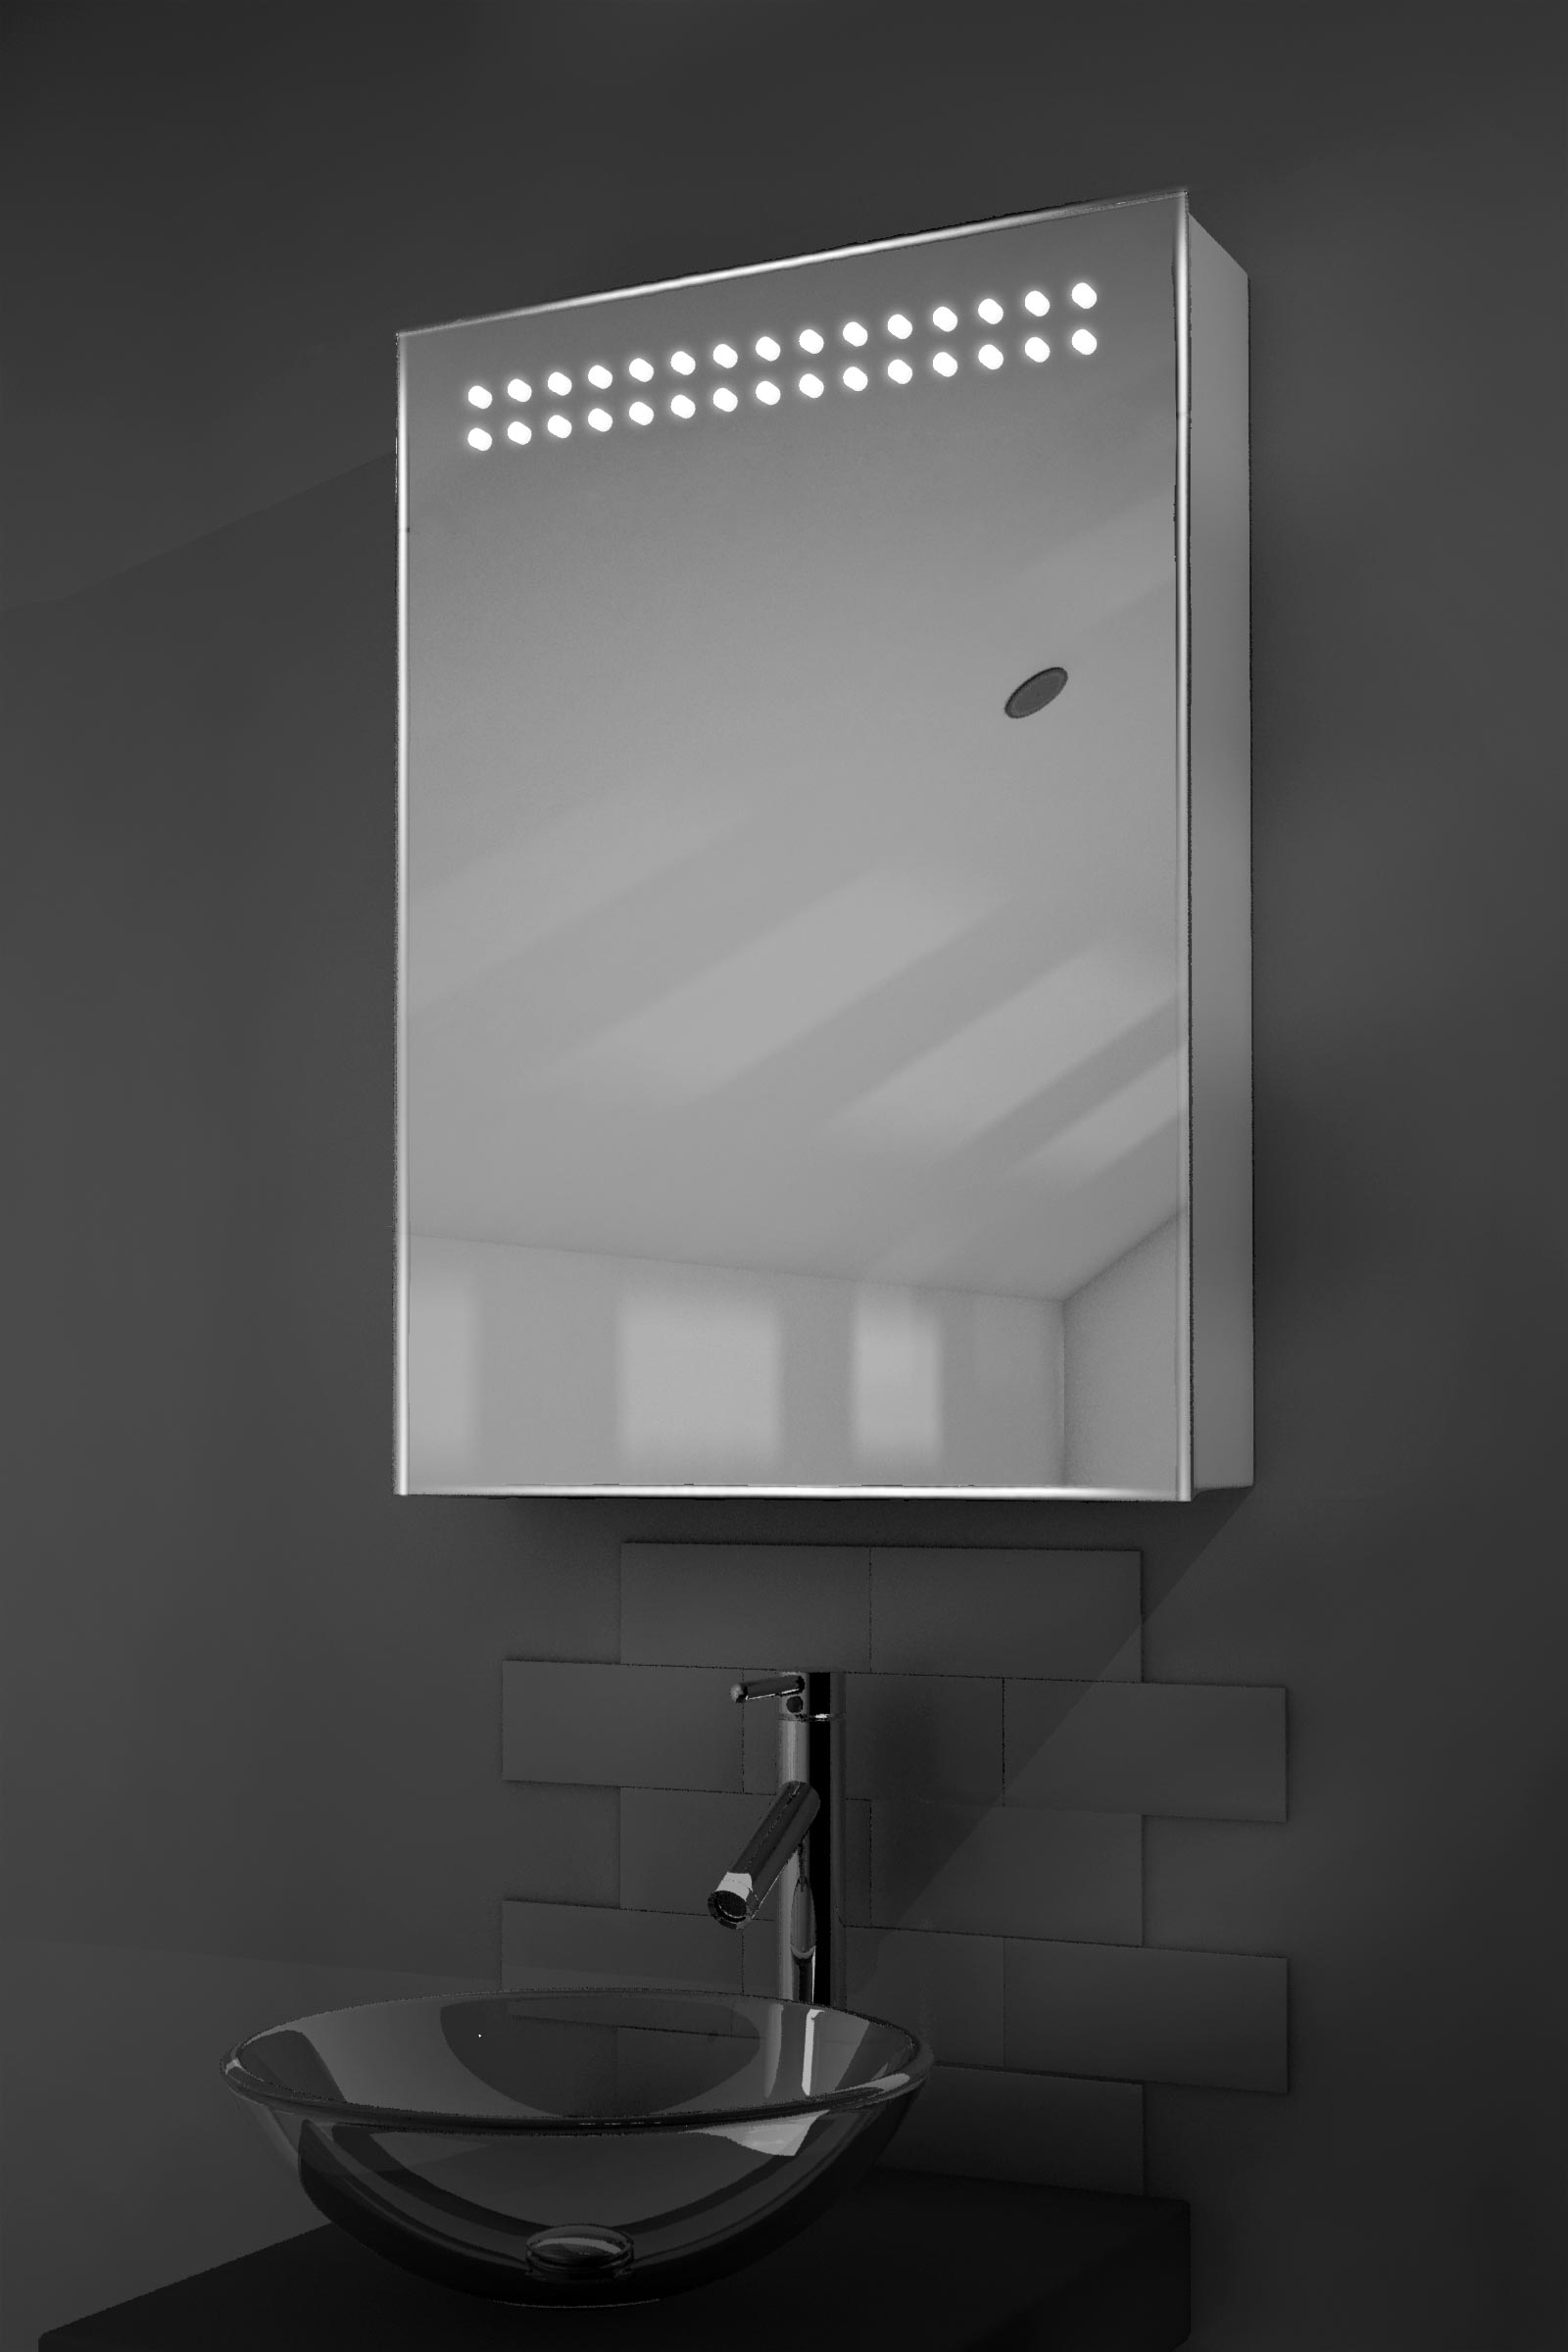 Bathroom Illuminated Mirror Cabinet Details About Vania Led Illuminated Bathroom Mirror Cabinet With Sensor Shaver K263